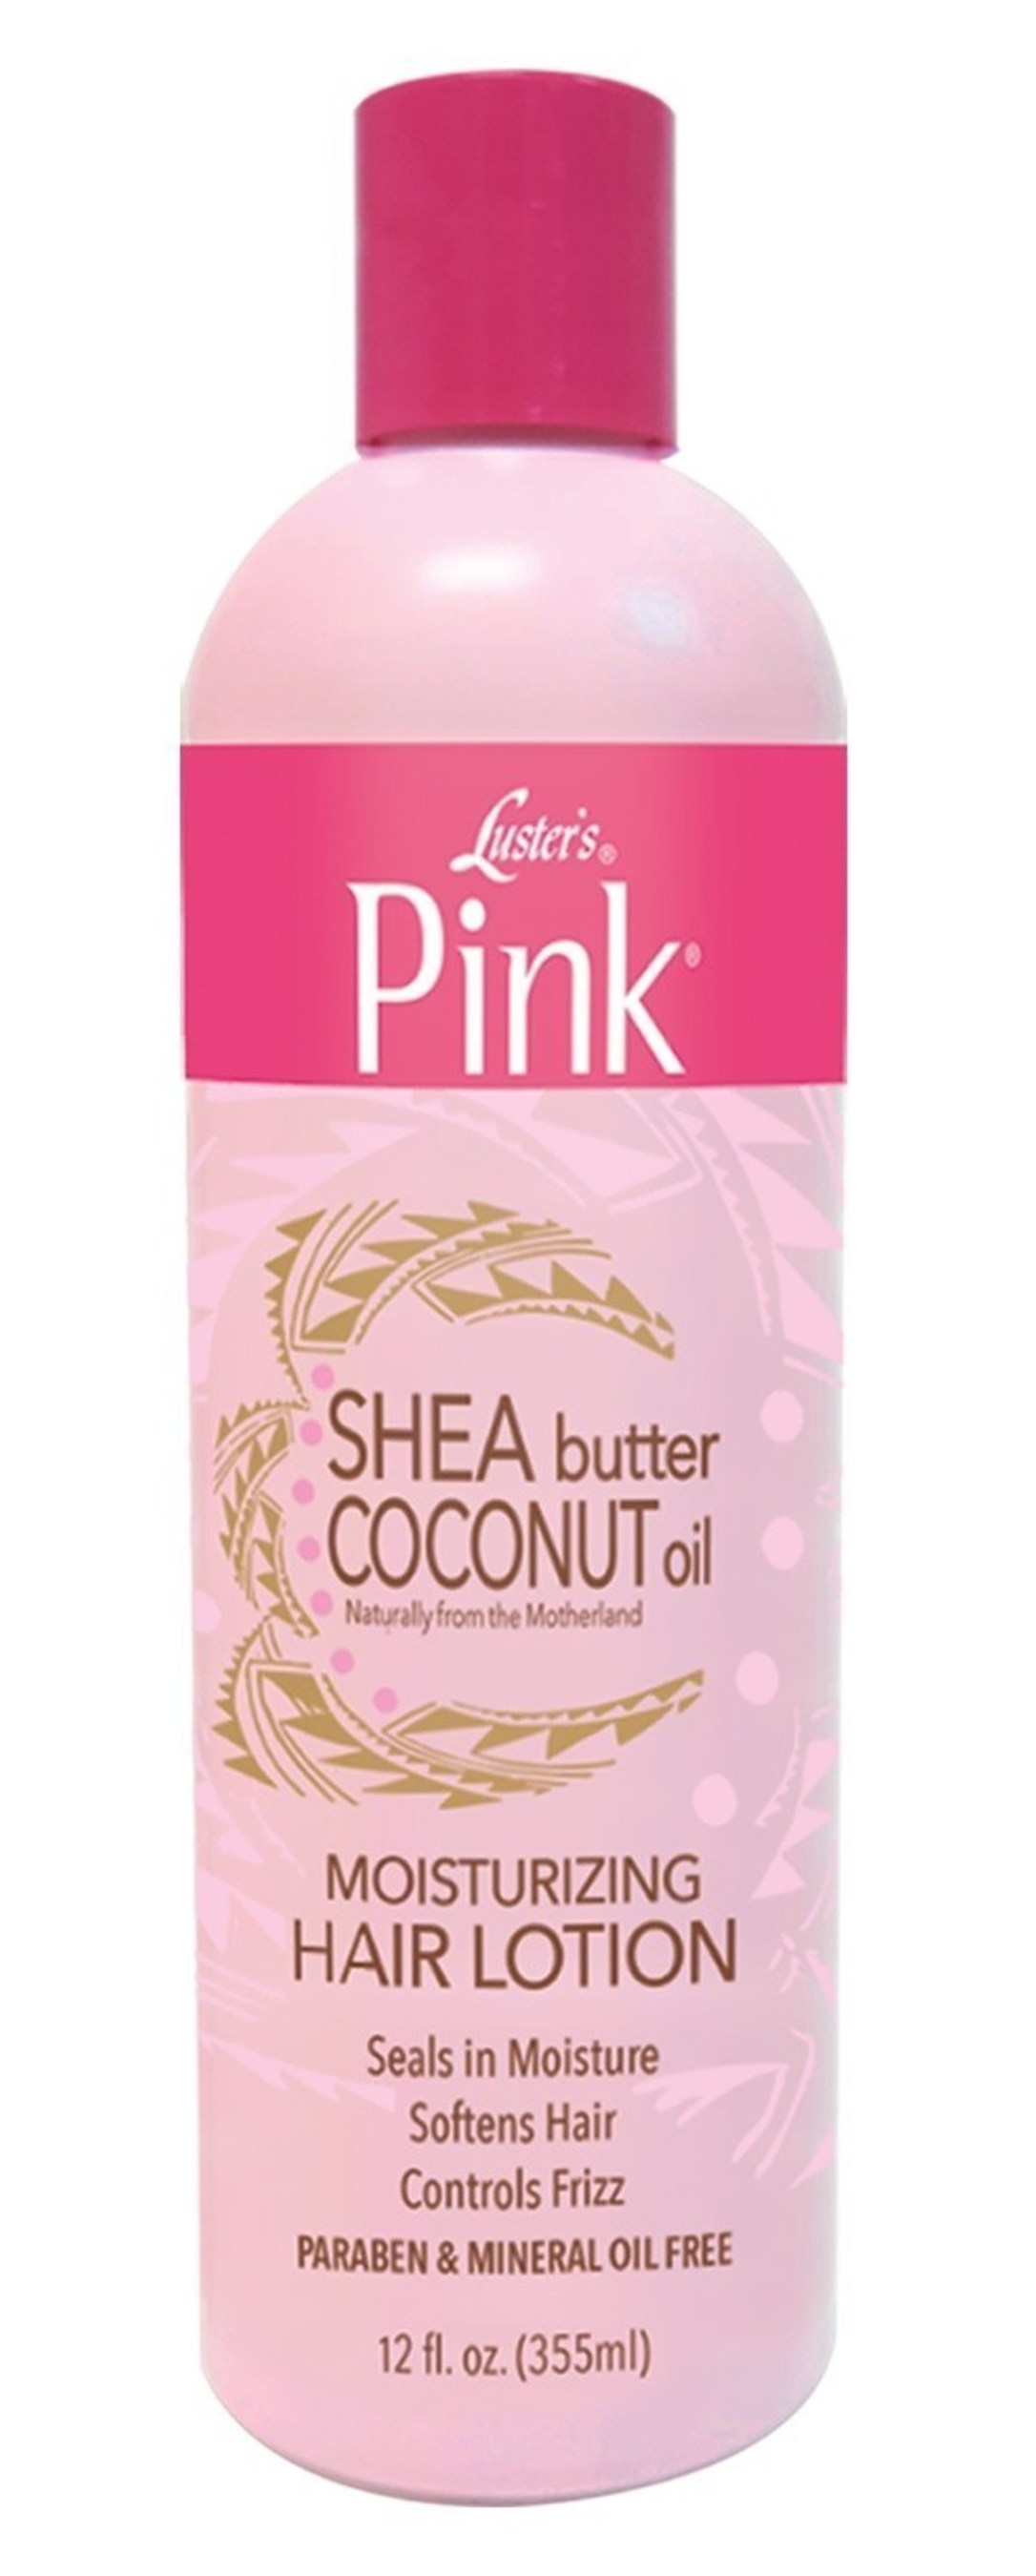 Luster's Pink(R) new paraben free products offer breath of fresh air for naturalistas!